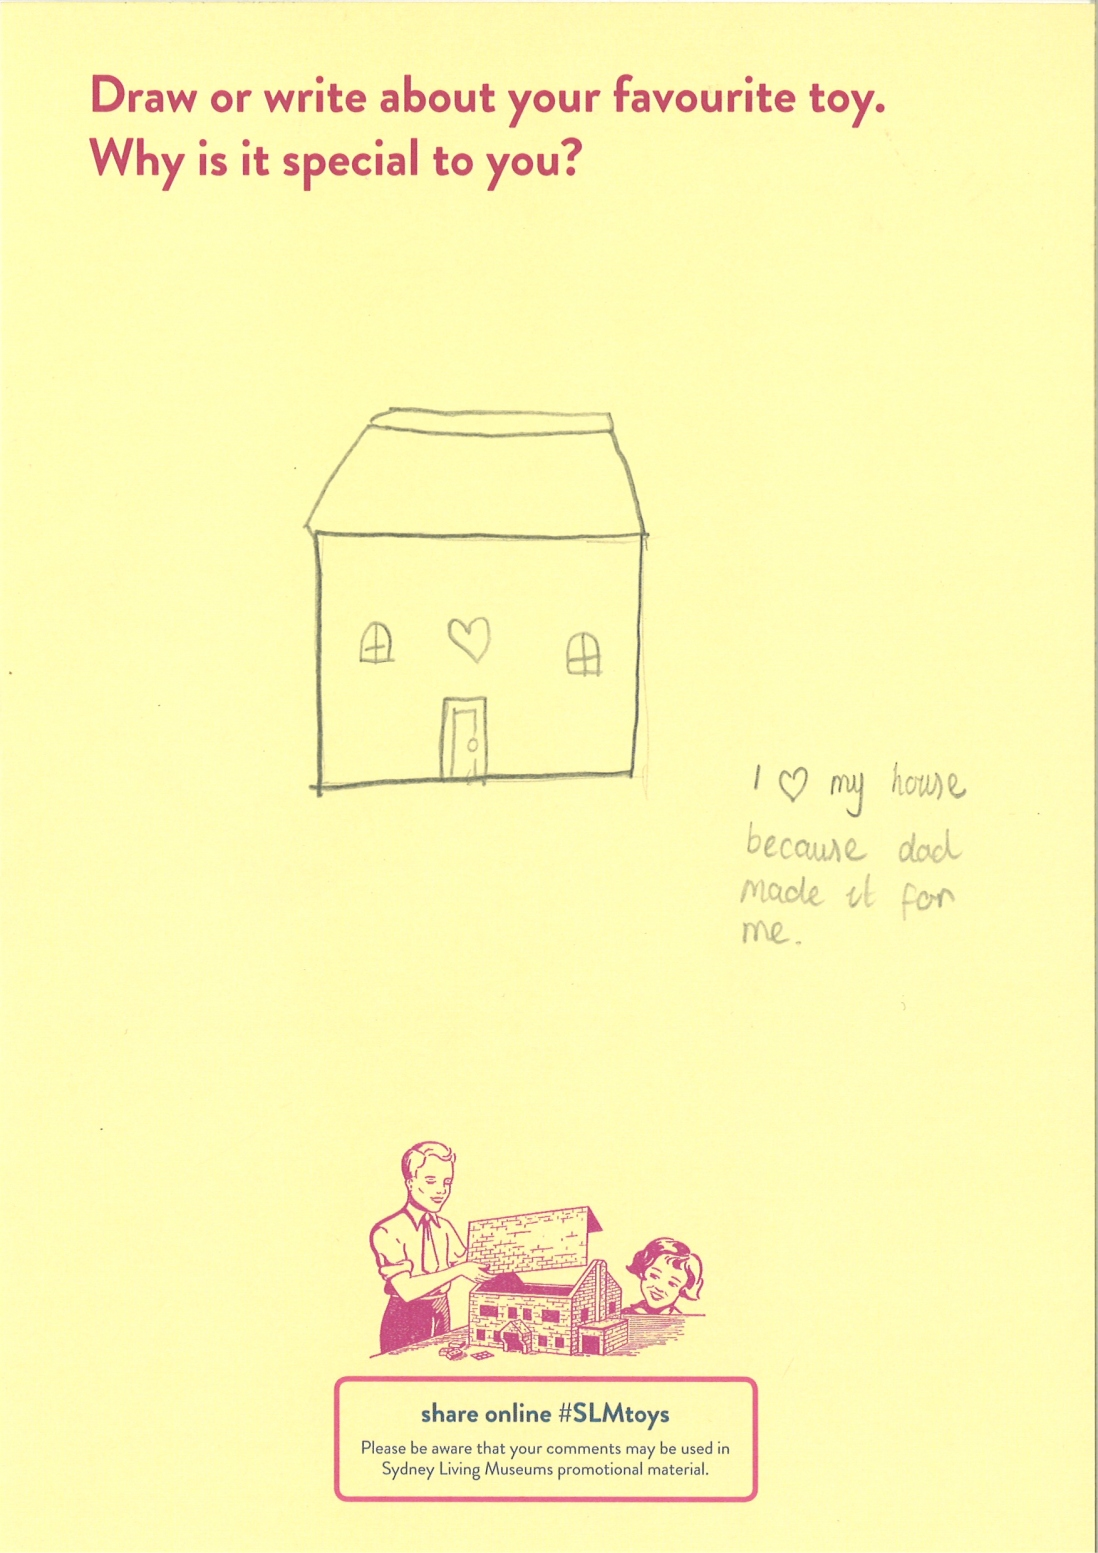 Drawing of a dolls house with two windows and a heart over the door